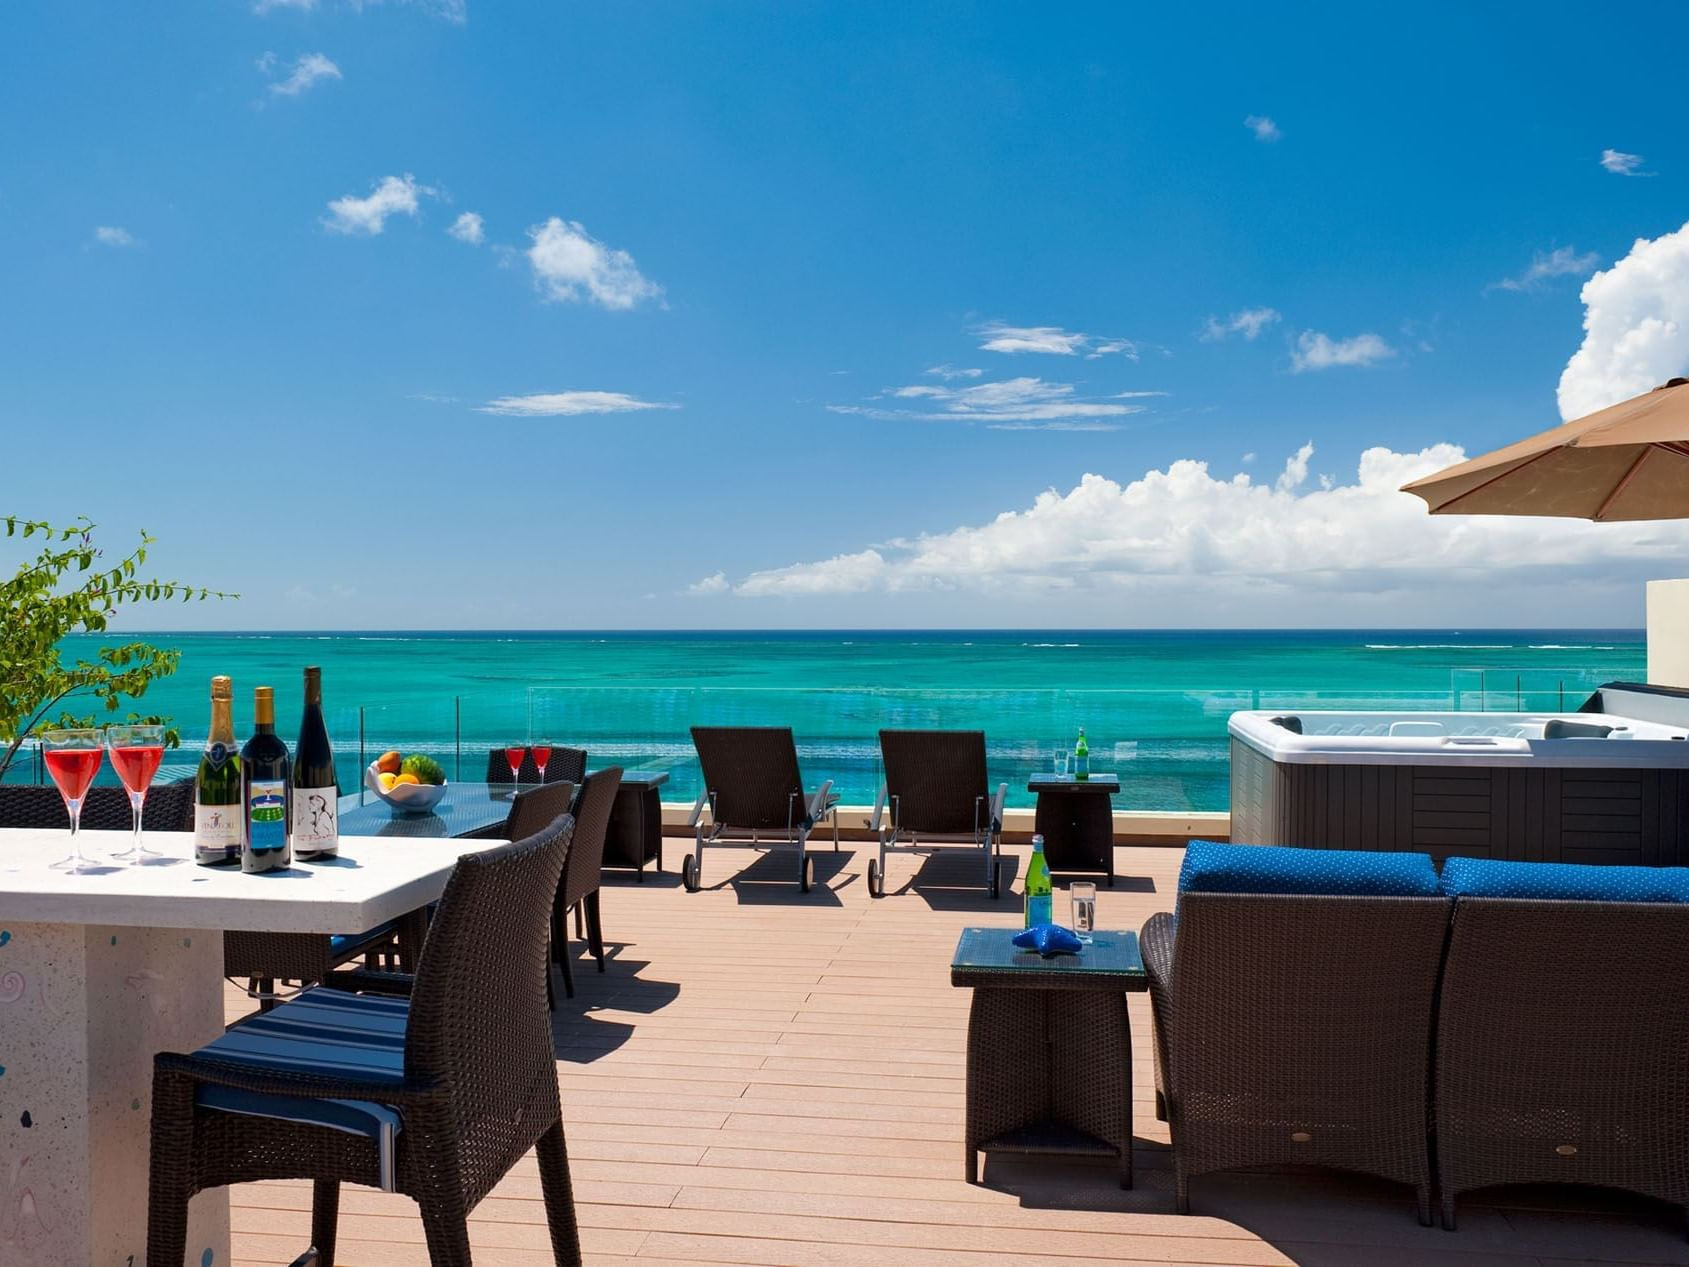 View of Rooftop terrace at Windsong Resort On The Reef